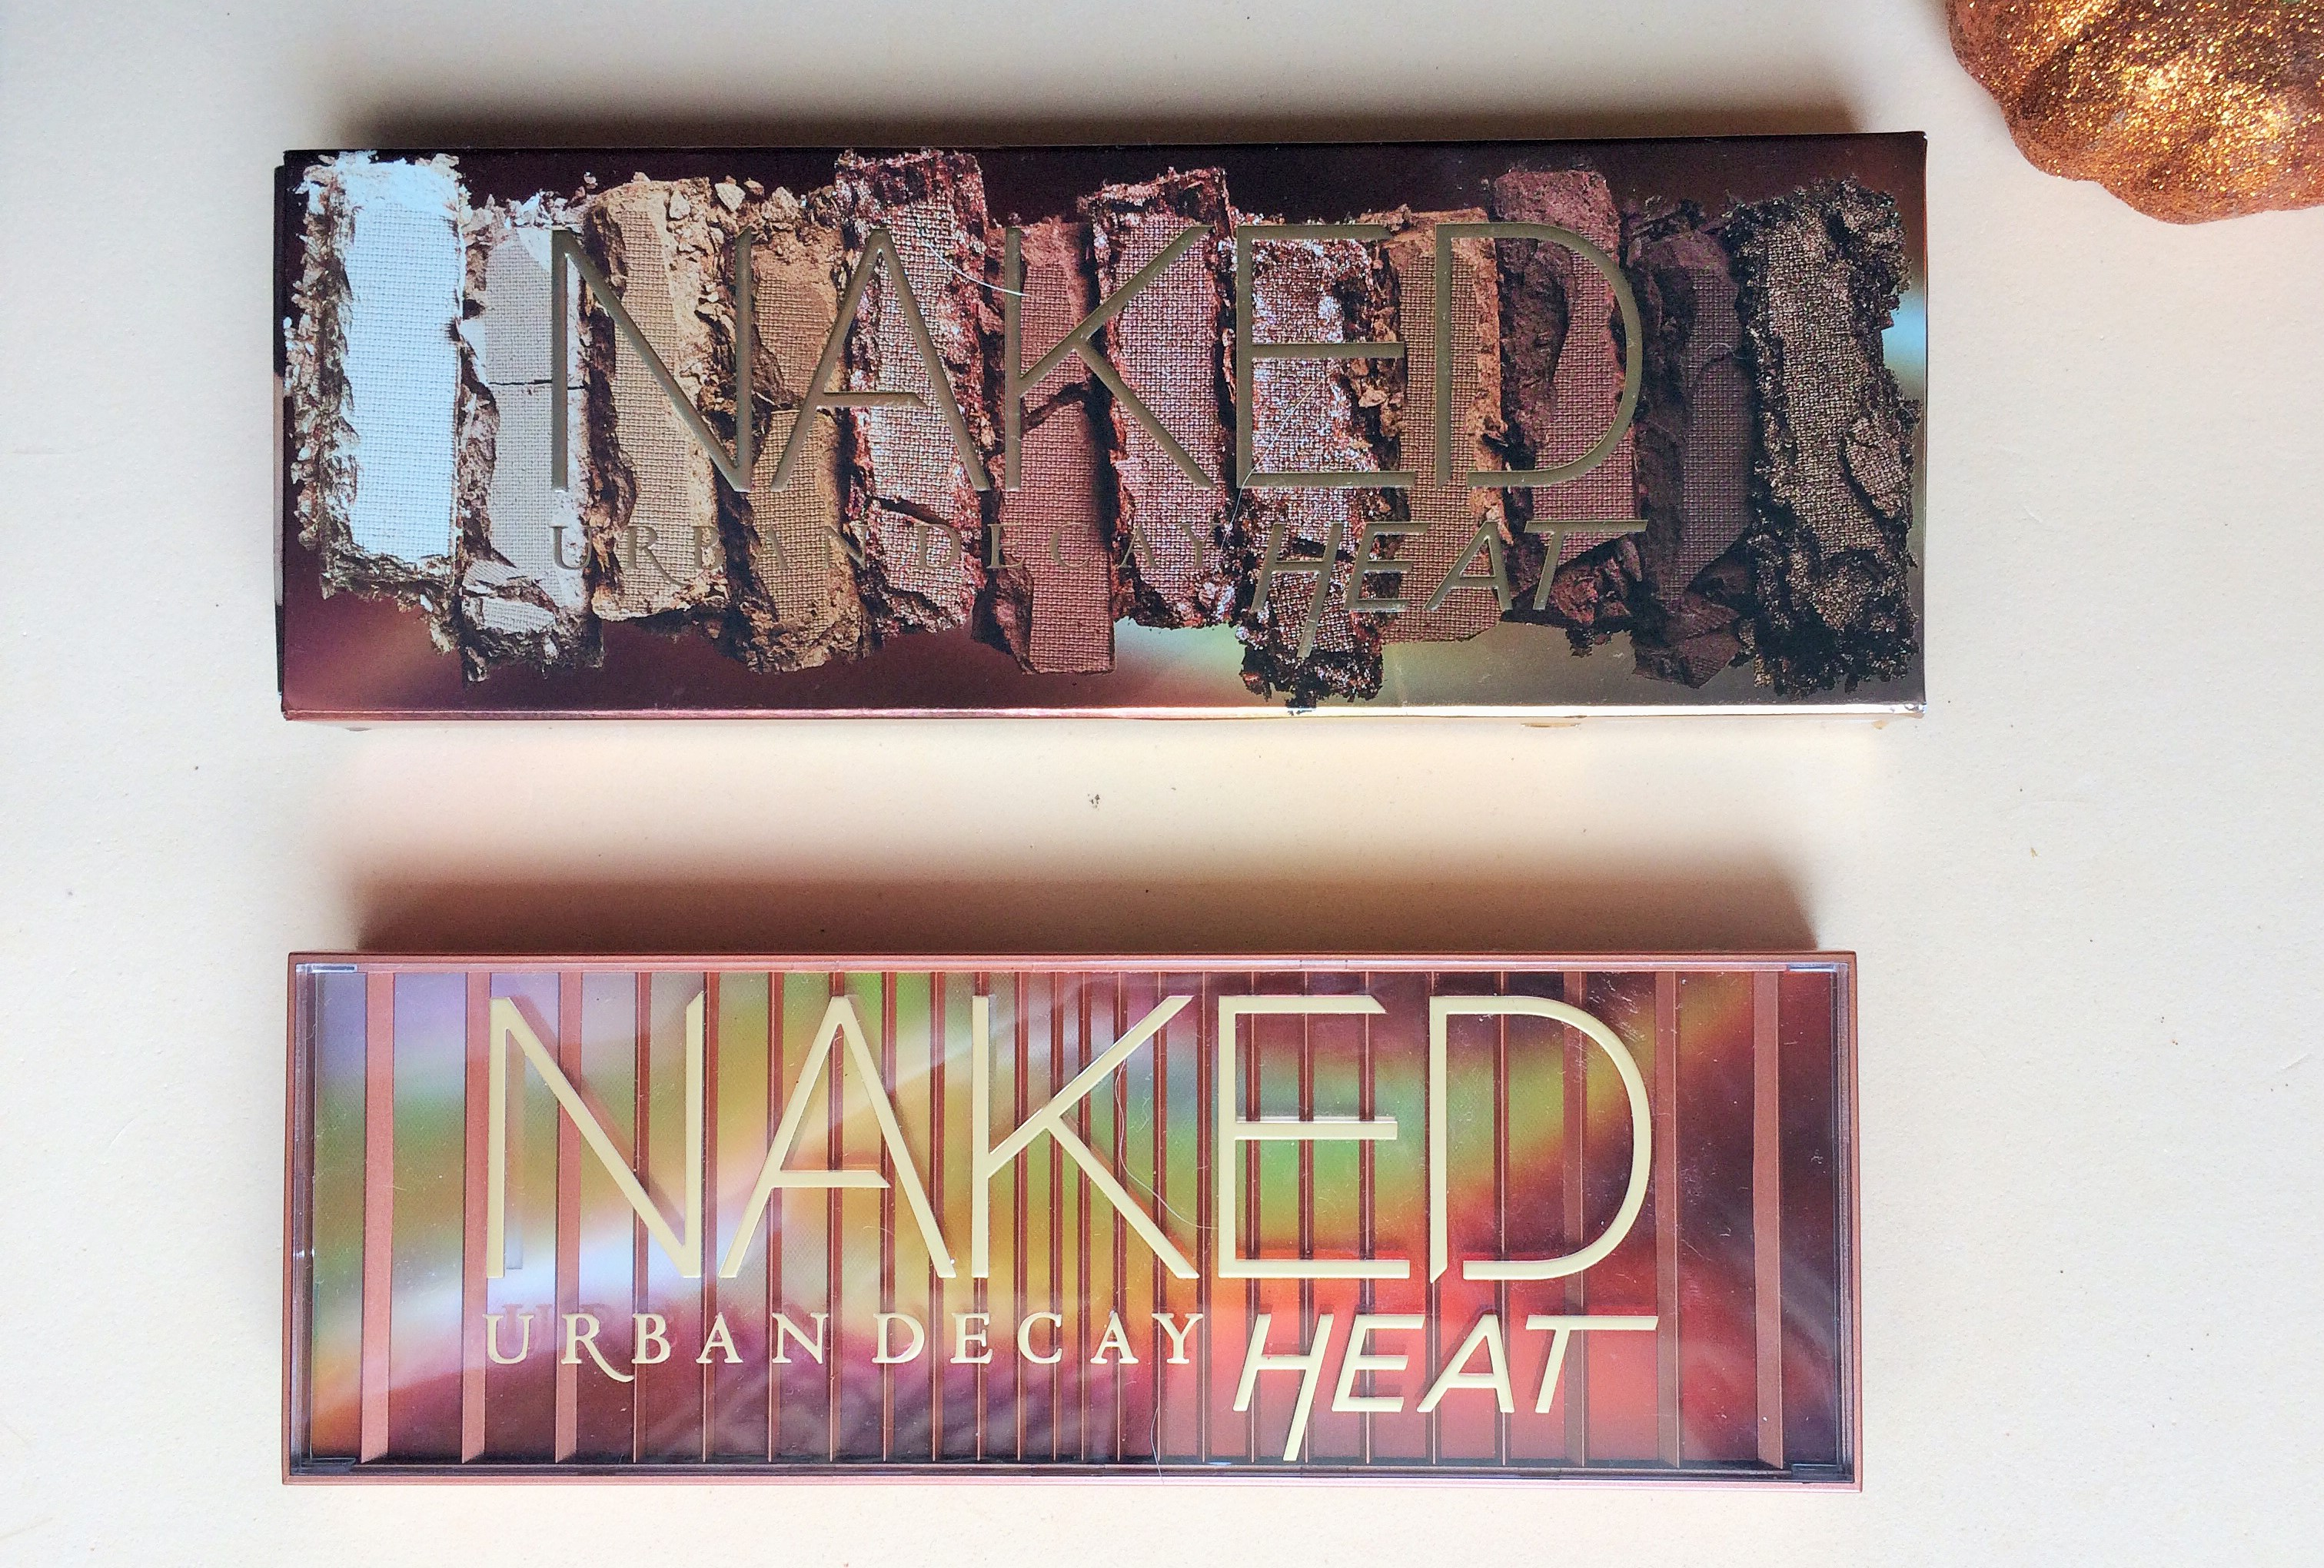 Urban Decay Naked Heat Review and Swatches [Click to read more]